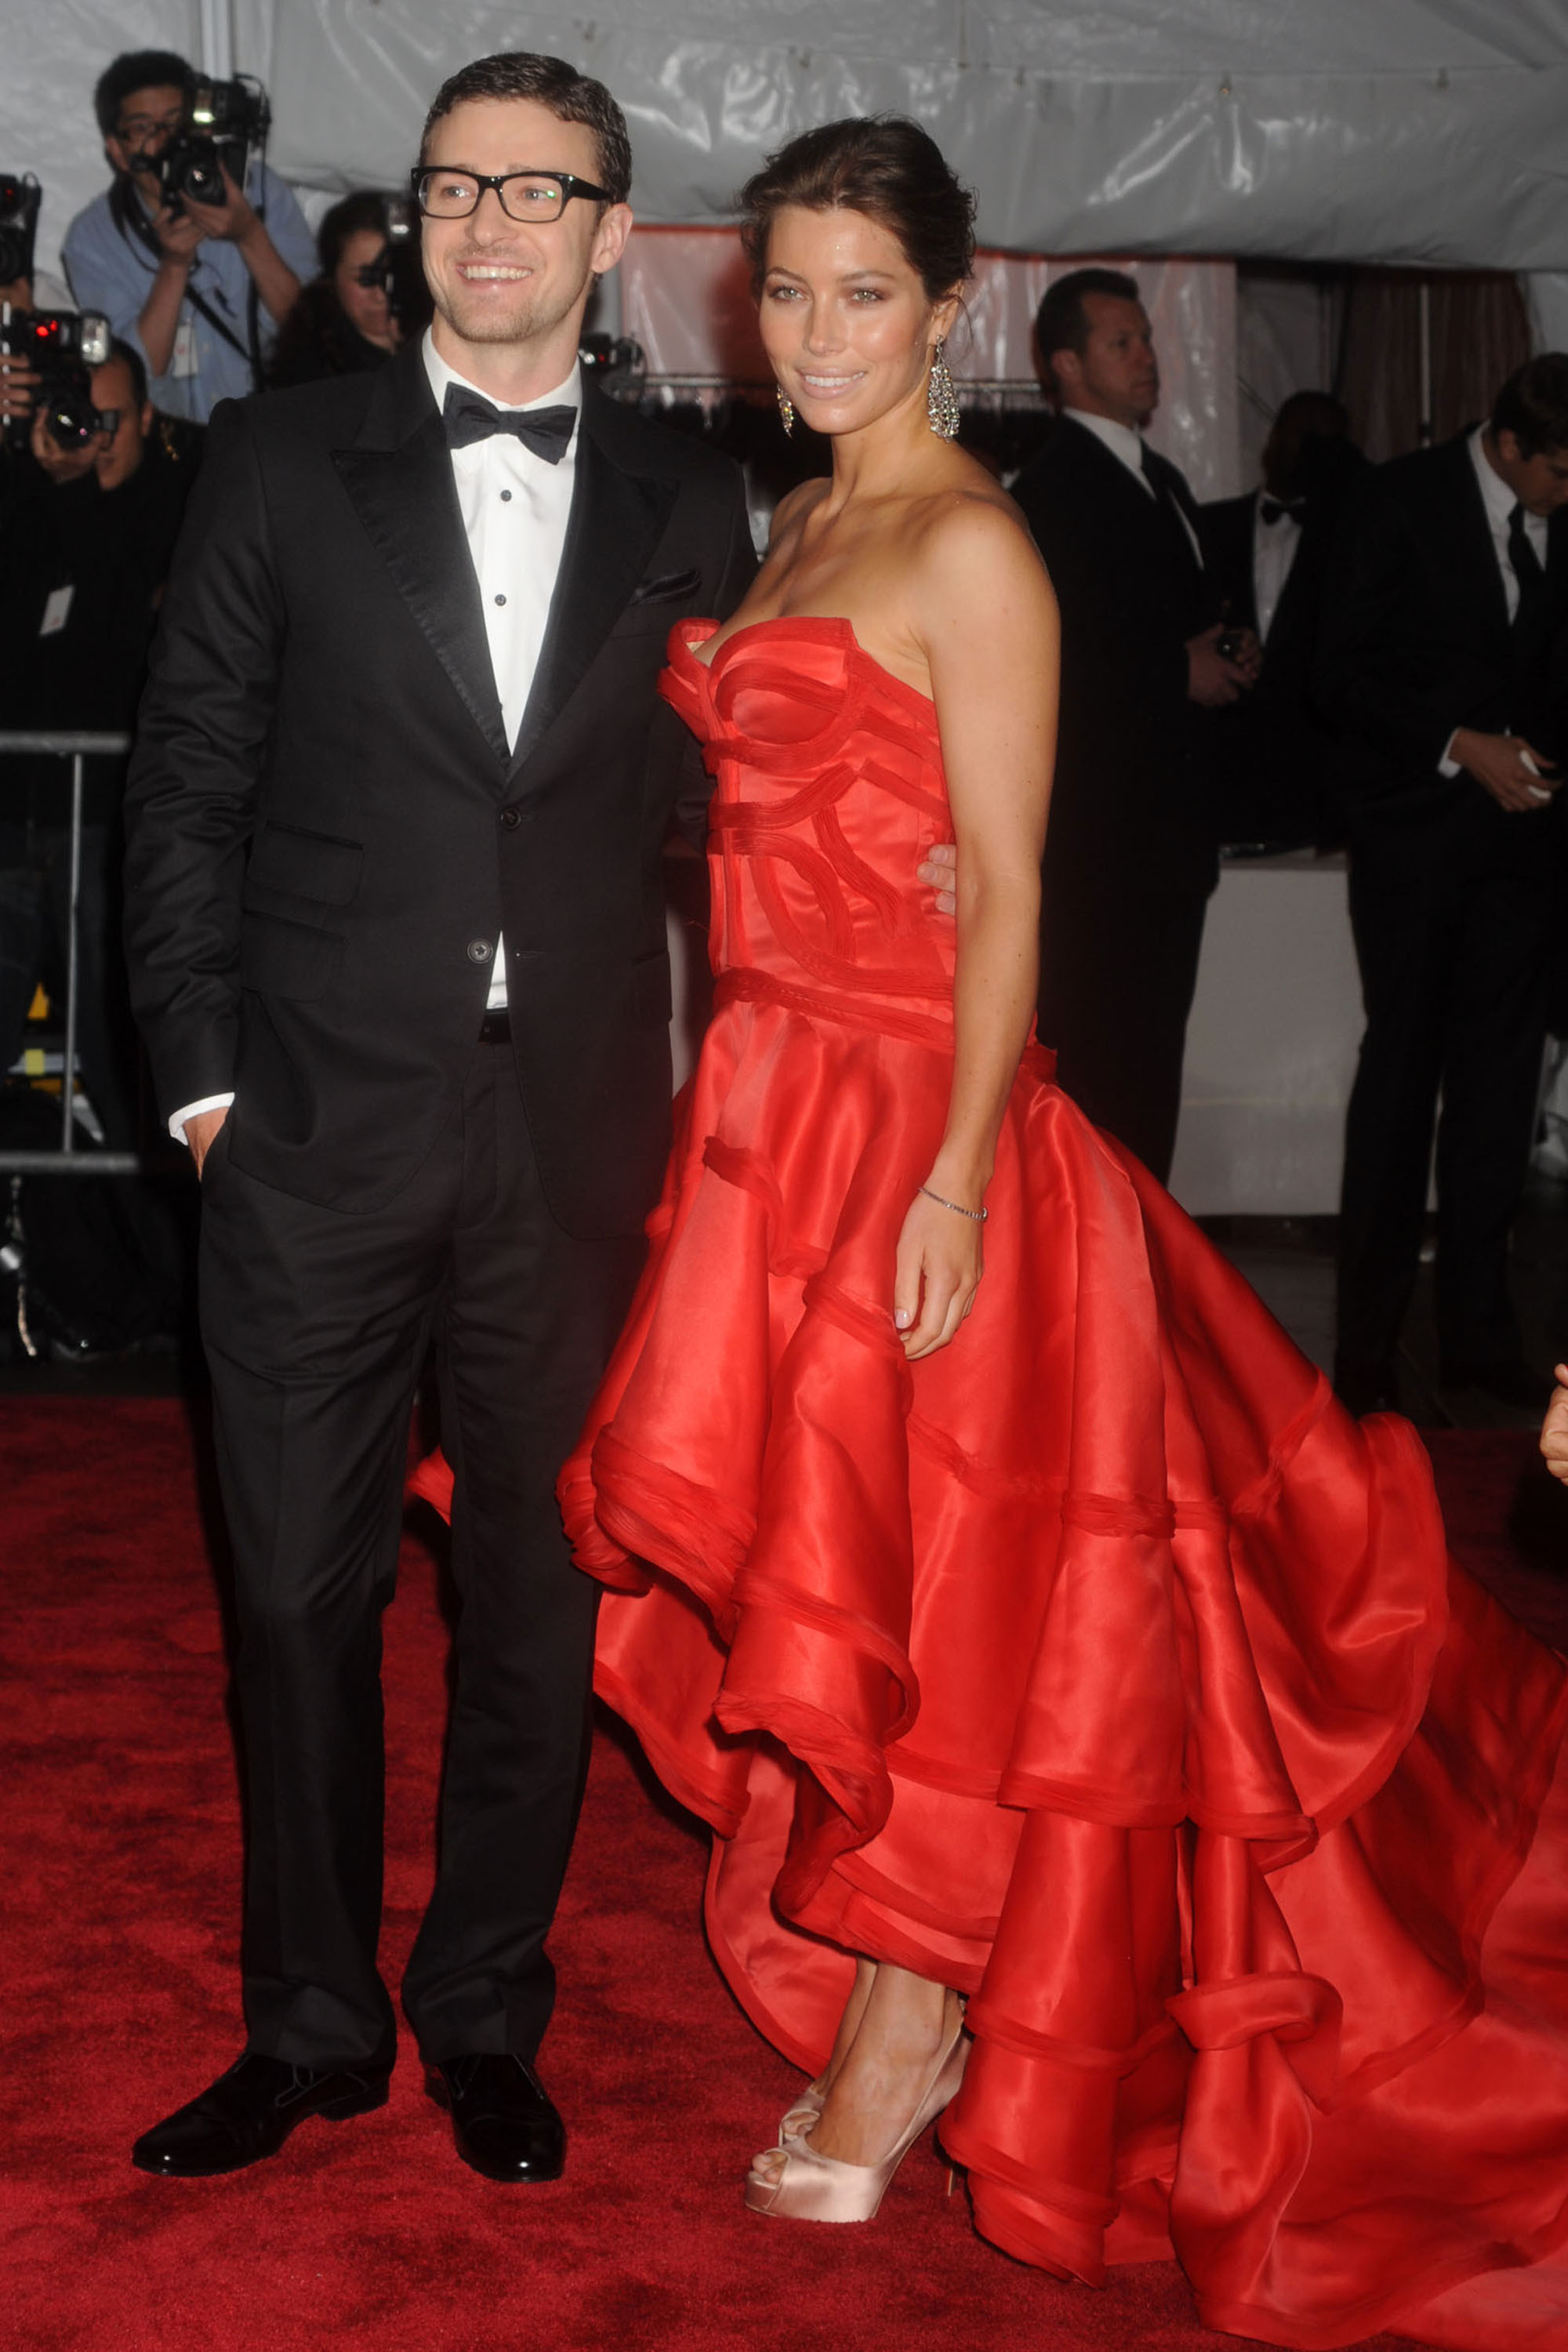 Justin Timberlake and Jessica Biel attend the Costume Institute Gala at the Metropolitan Museum of Art in New York City on May 4, 2009.